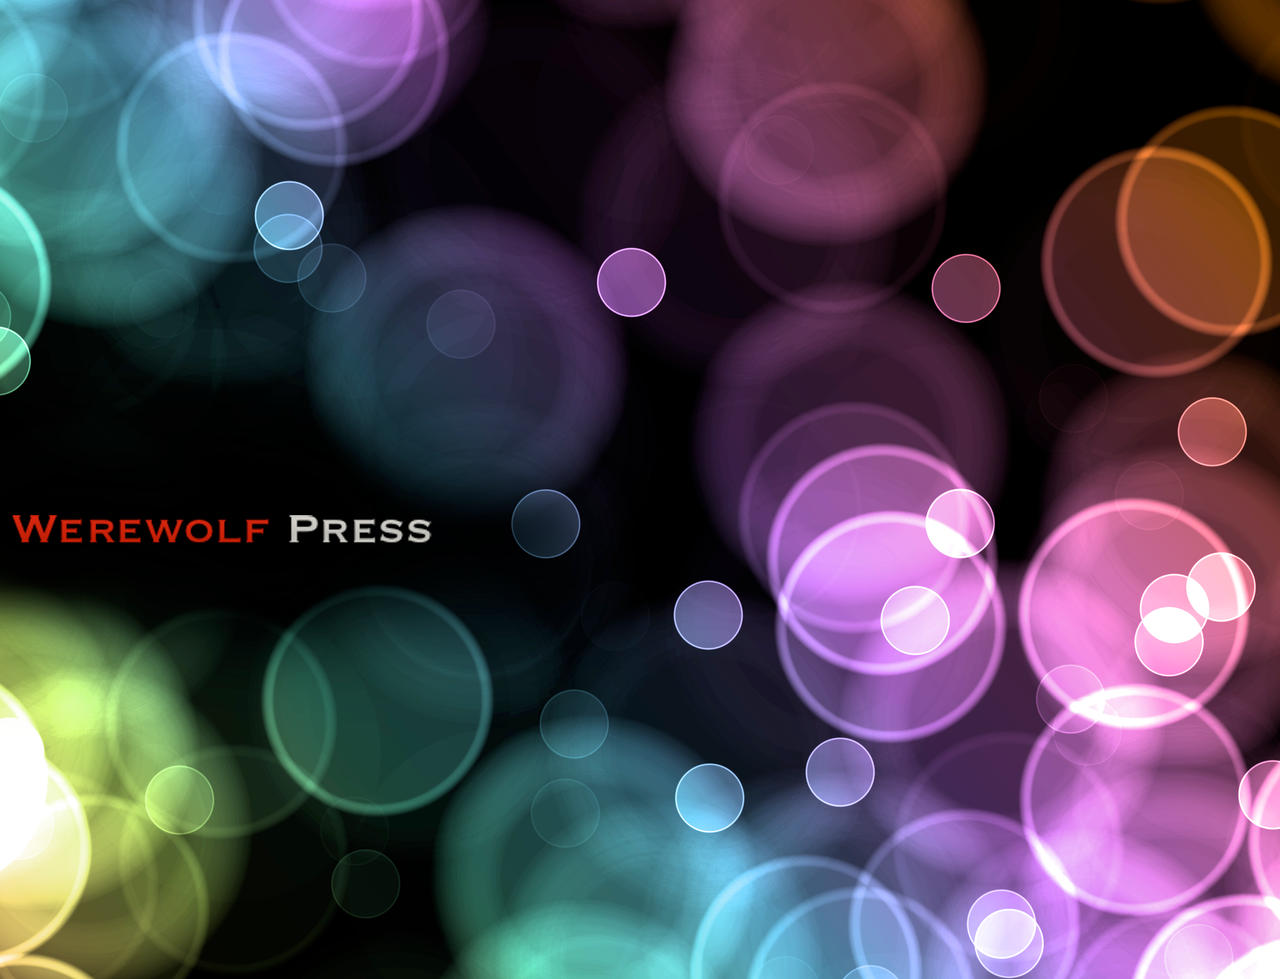 Werewolf Press - Wallpaper 1 by Varcolacu